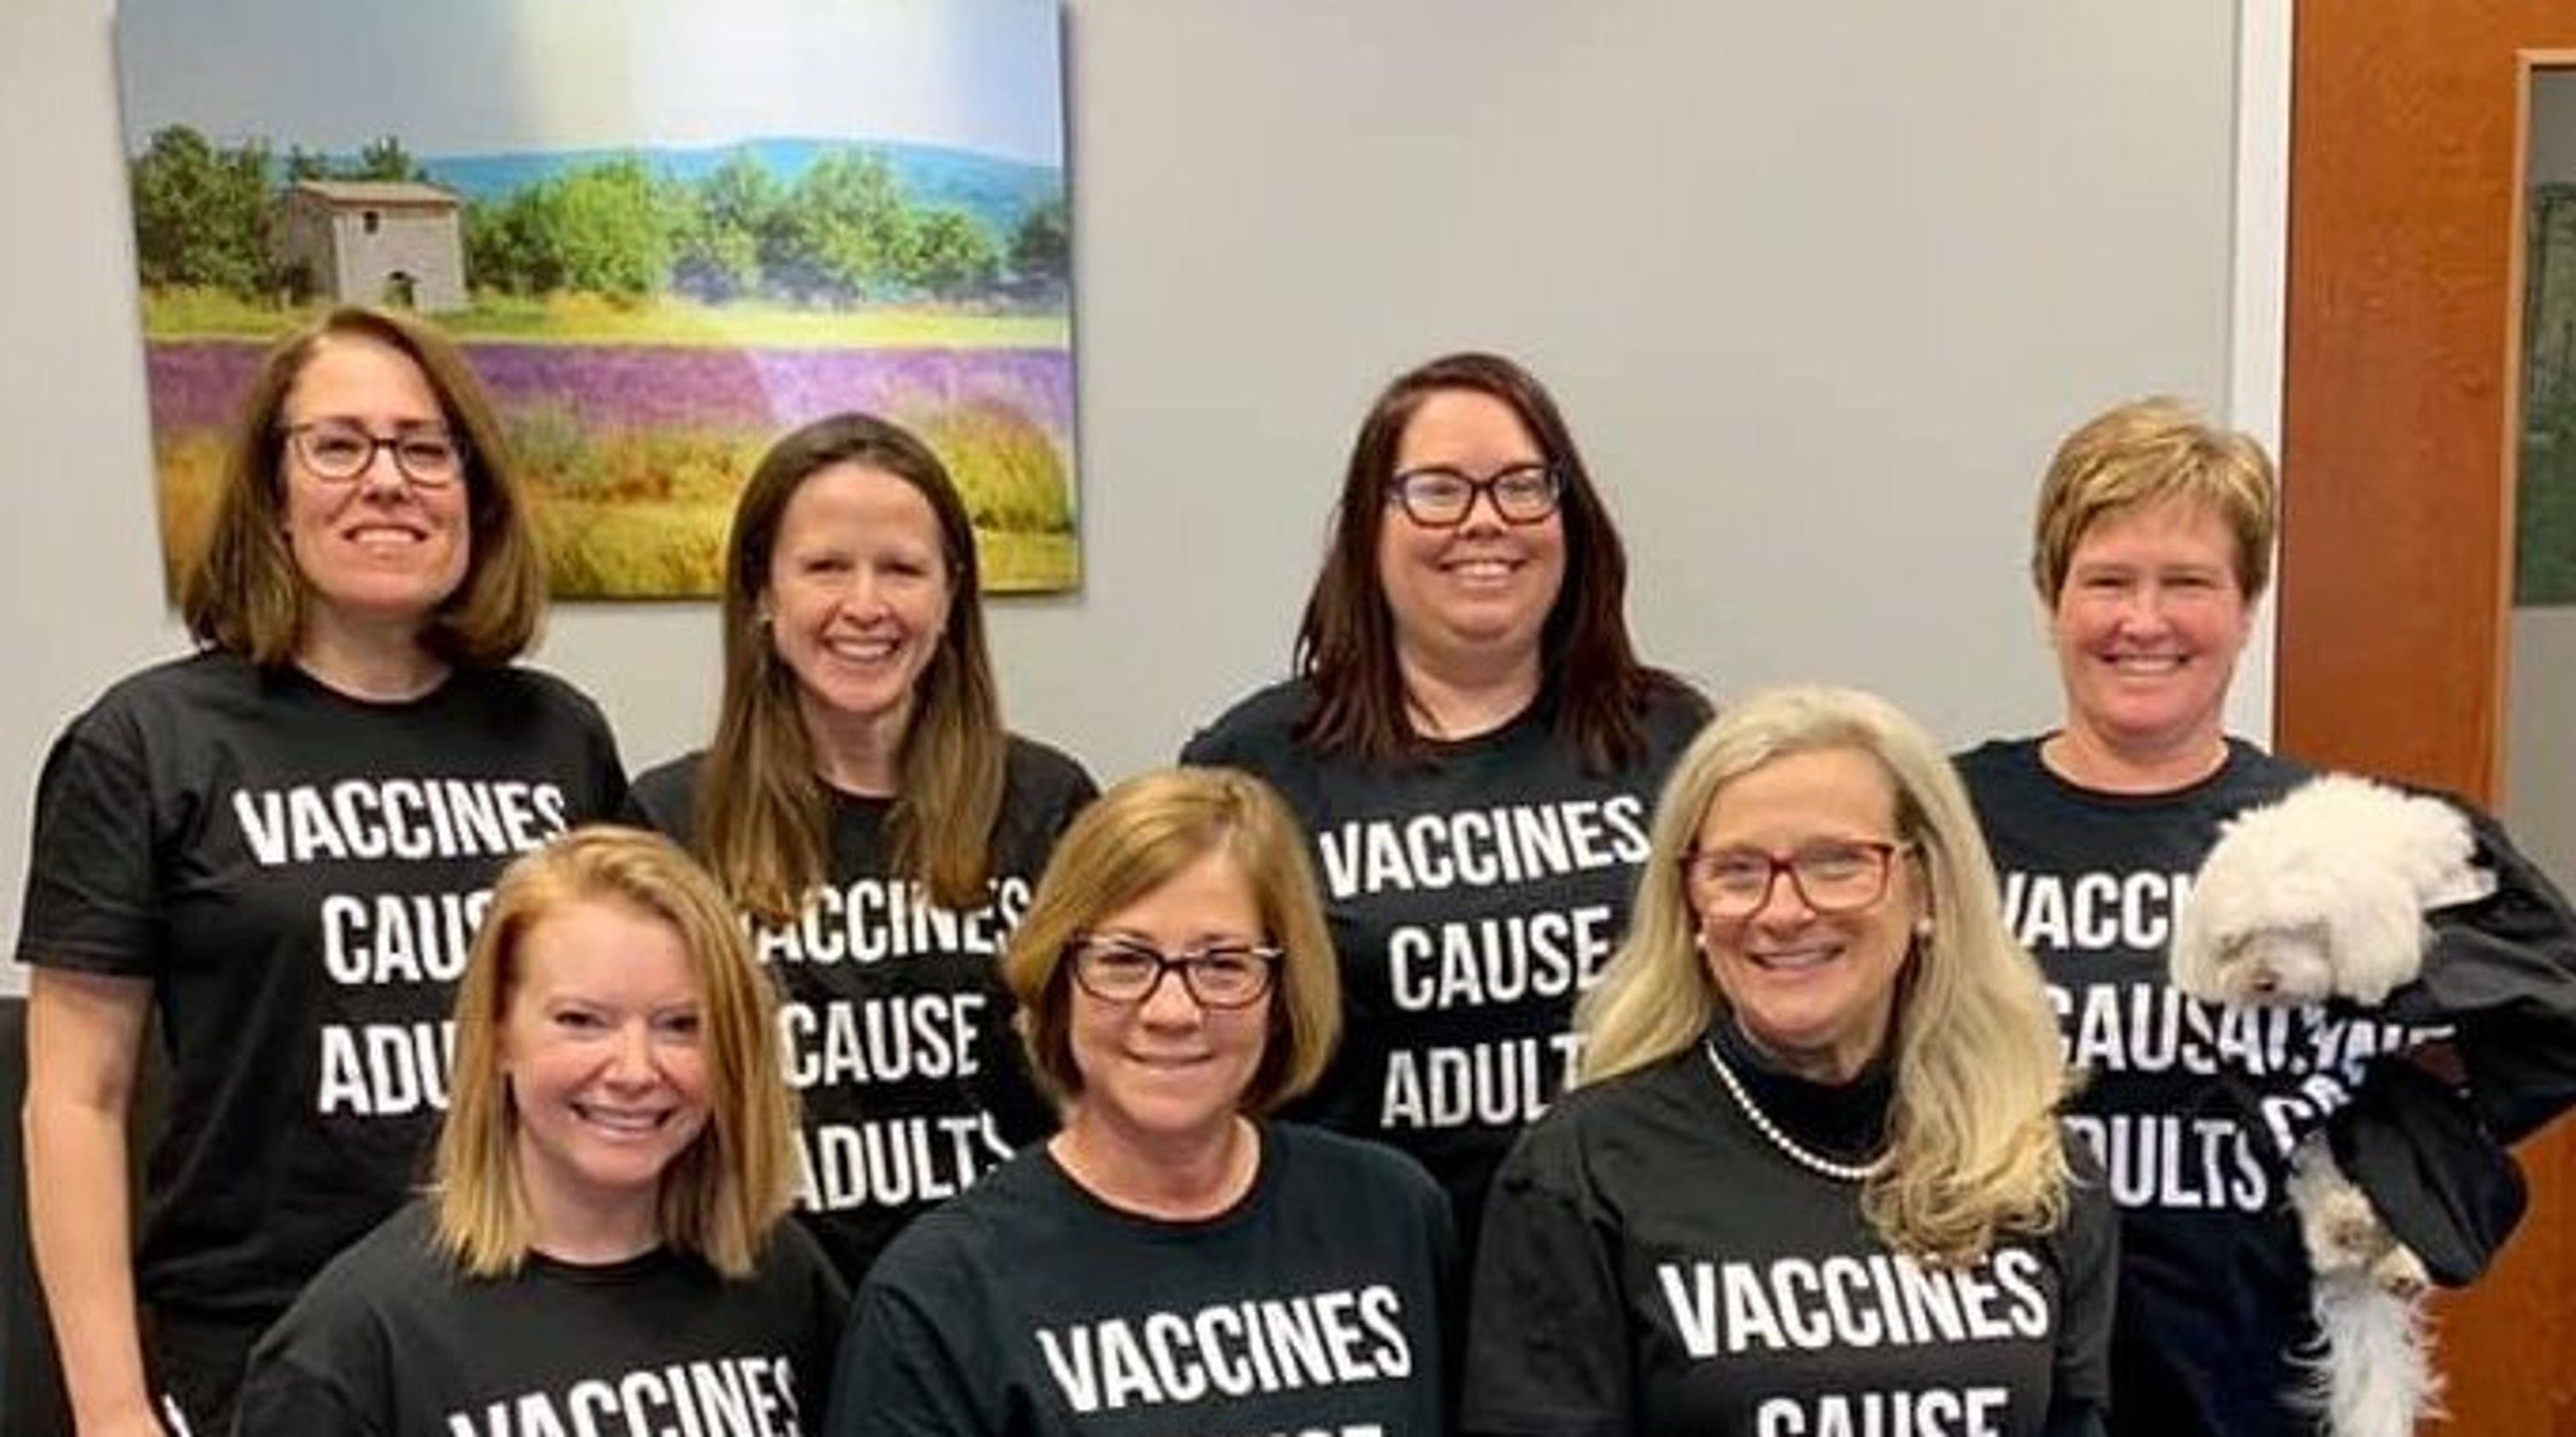 'Vaccines Cause Adults': Pediatric staff's response to anti-vaxxers after measles outbreak